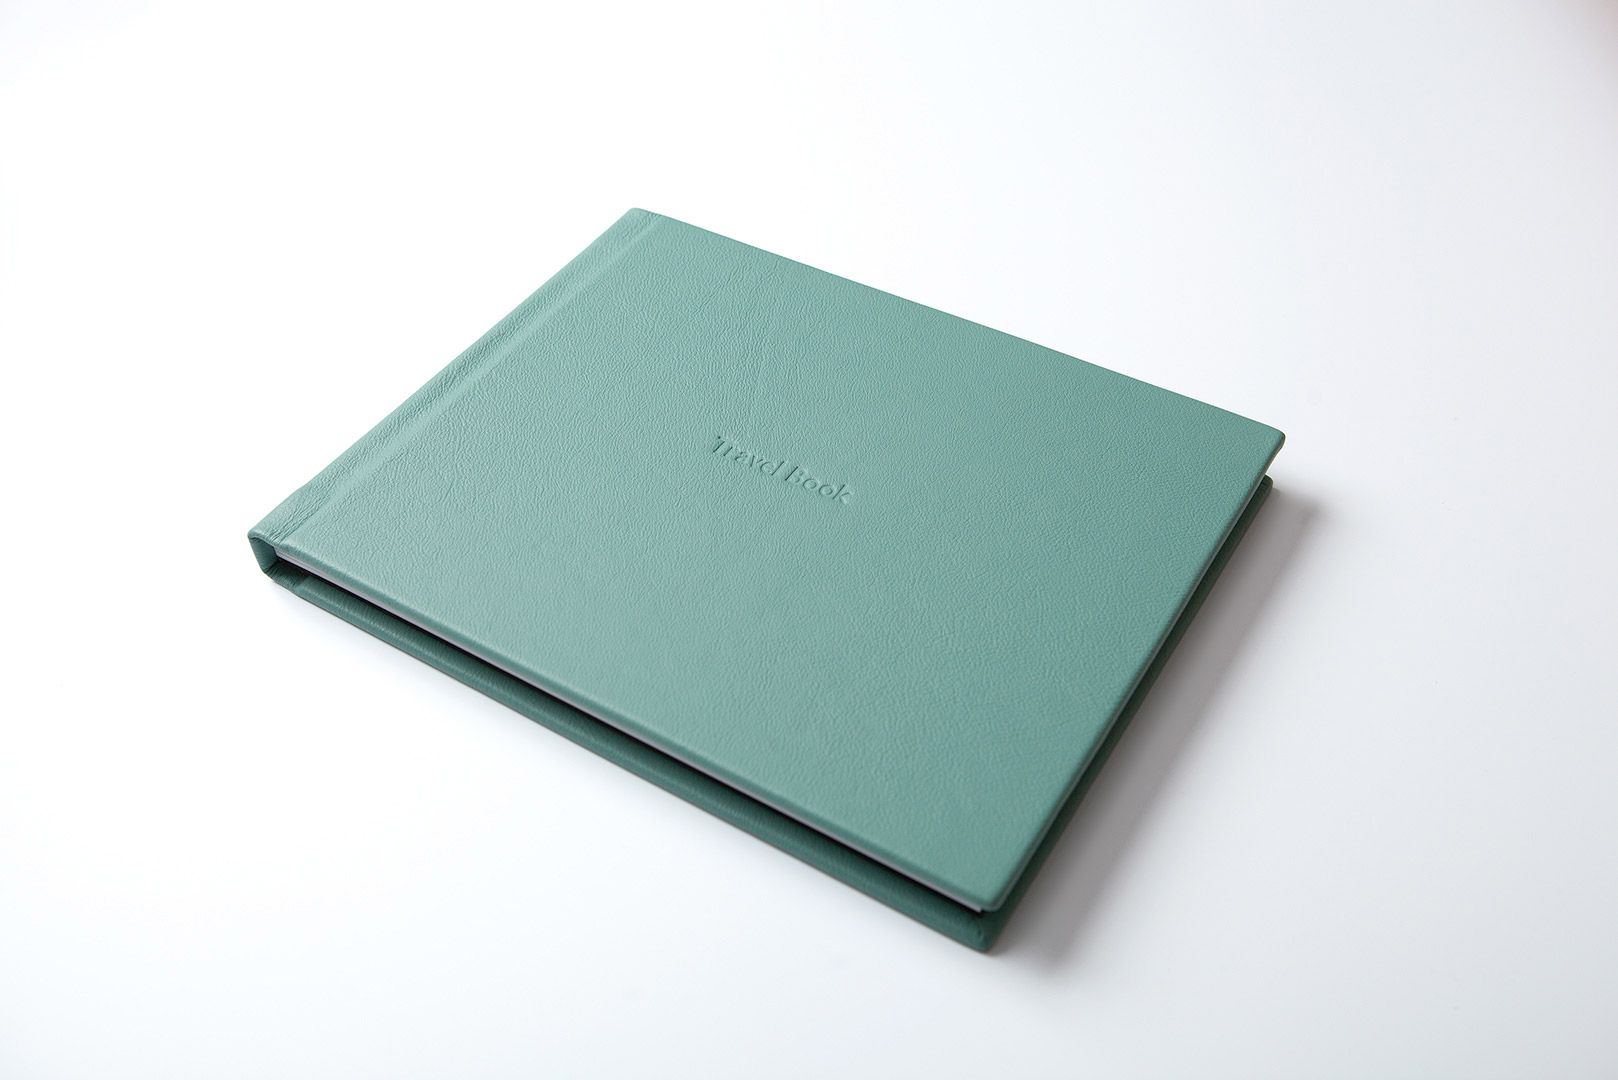 Jade green bull leather cover luxury photo album embossed title